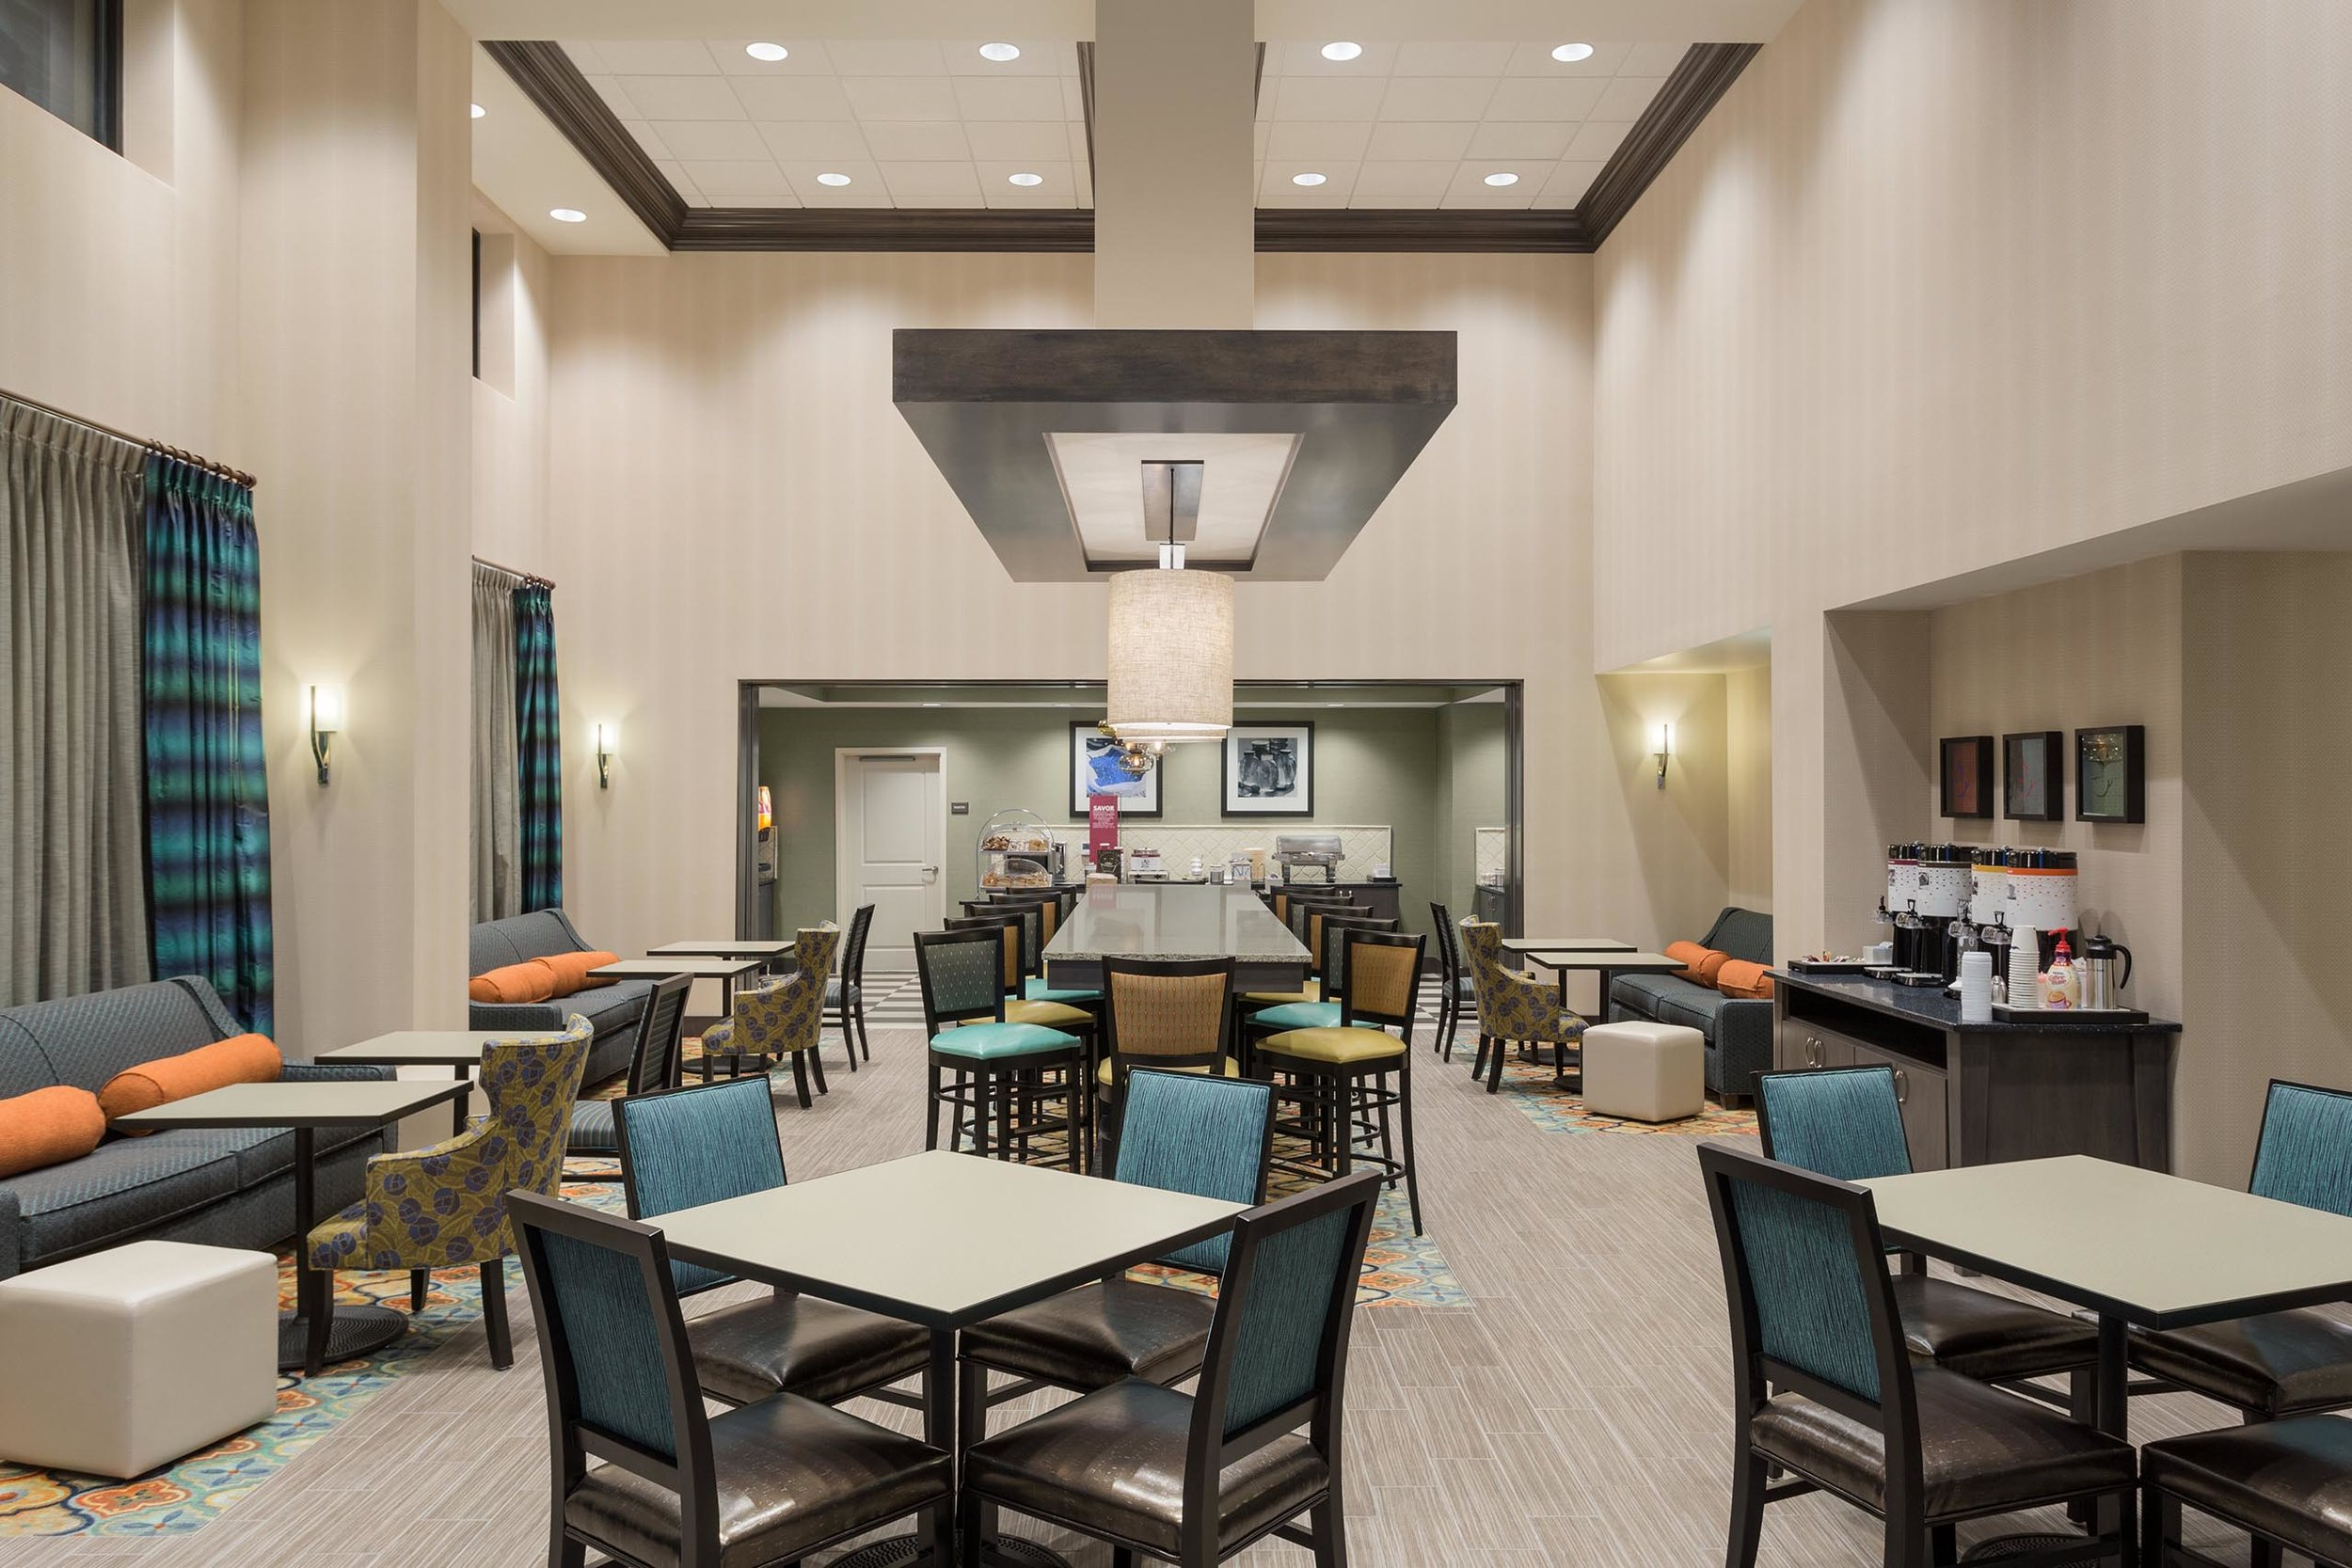 Breakfast seating area in the Hampton Inn & Suites in West Des Moines, IA